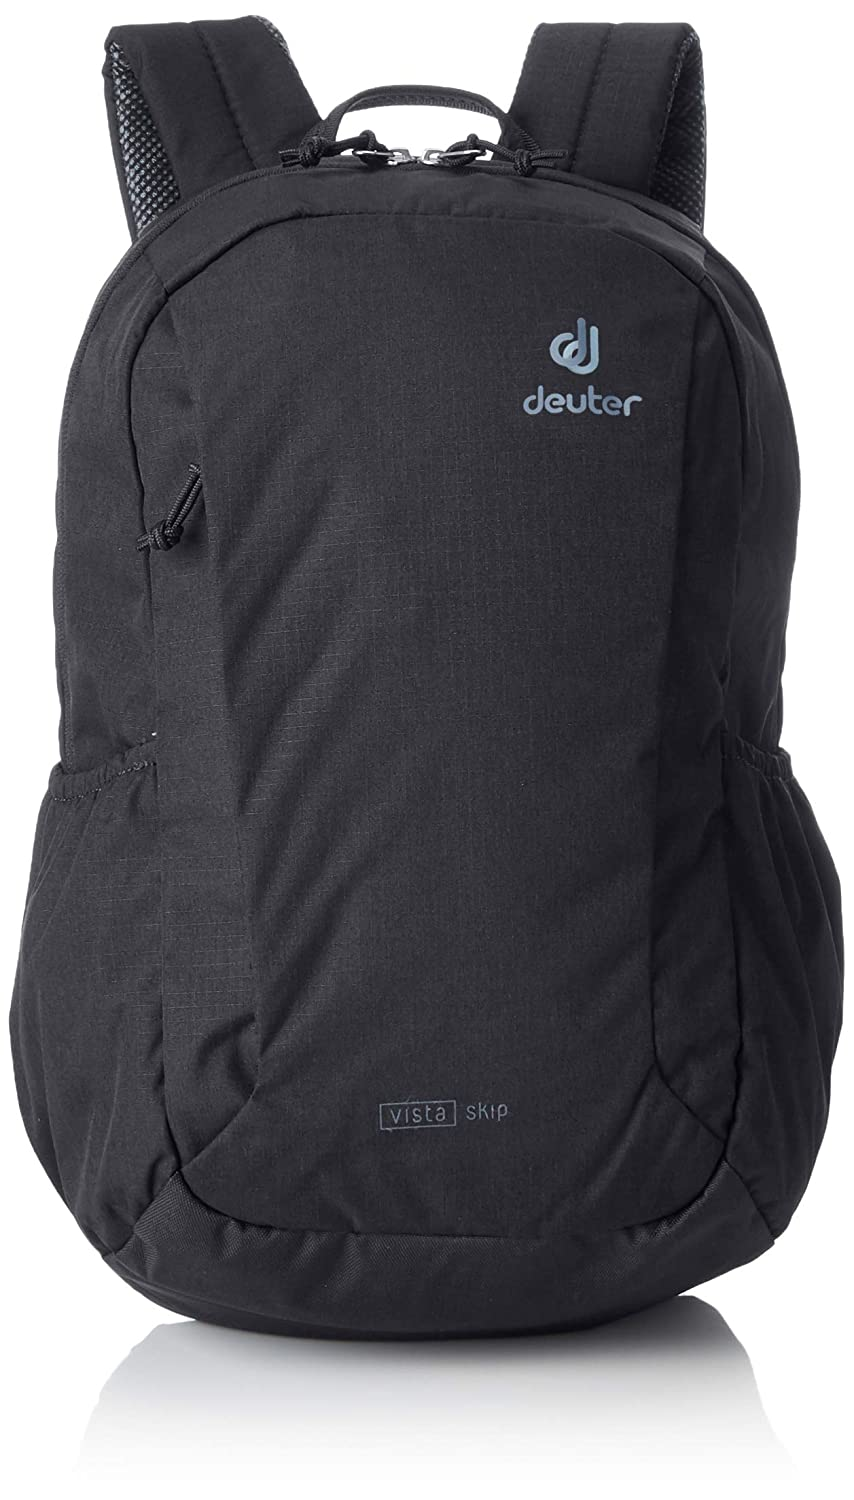 shoes for cheap new styles great look Deuter Unisex's Vista Skip Backpack, Black, NS: Amazon.co.uk ...